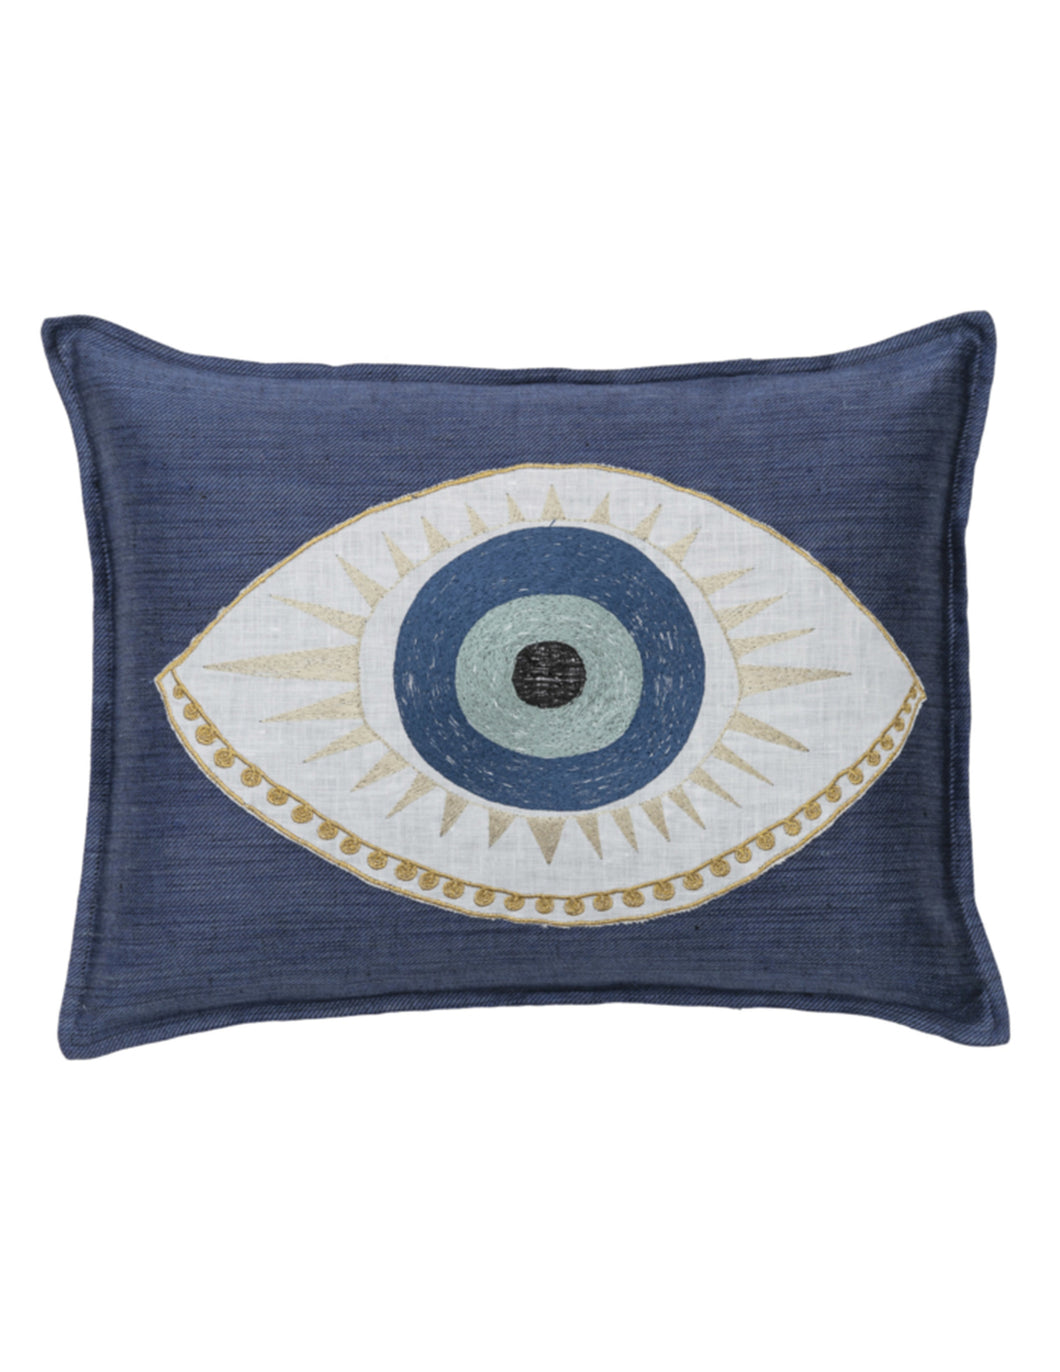 Coral and Tusk | Evil Eye Appliqué | Pillow - Blue New York